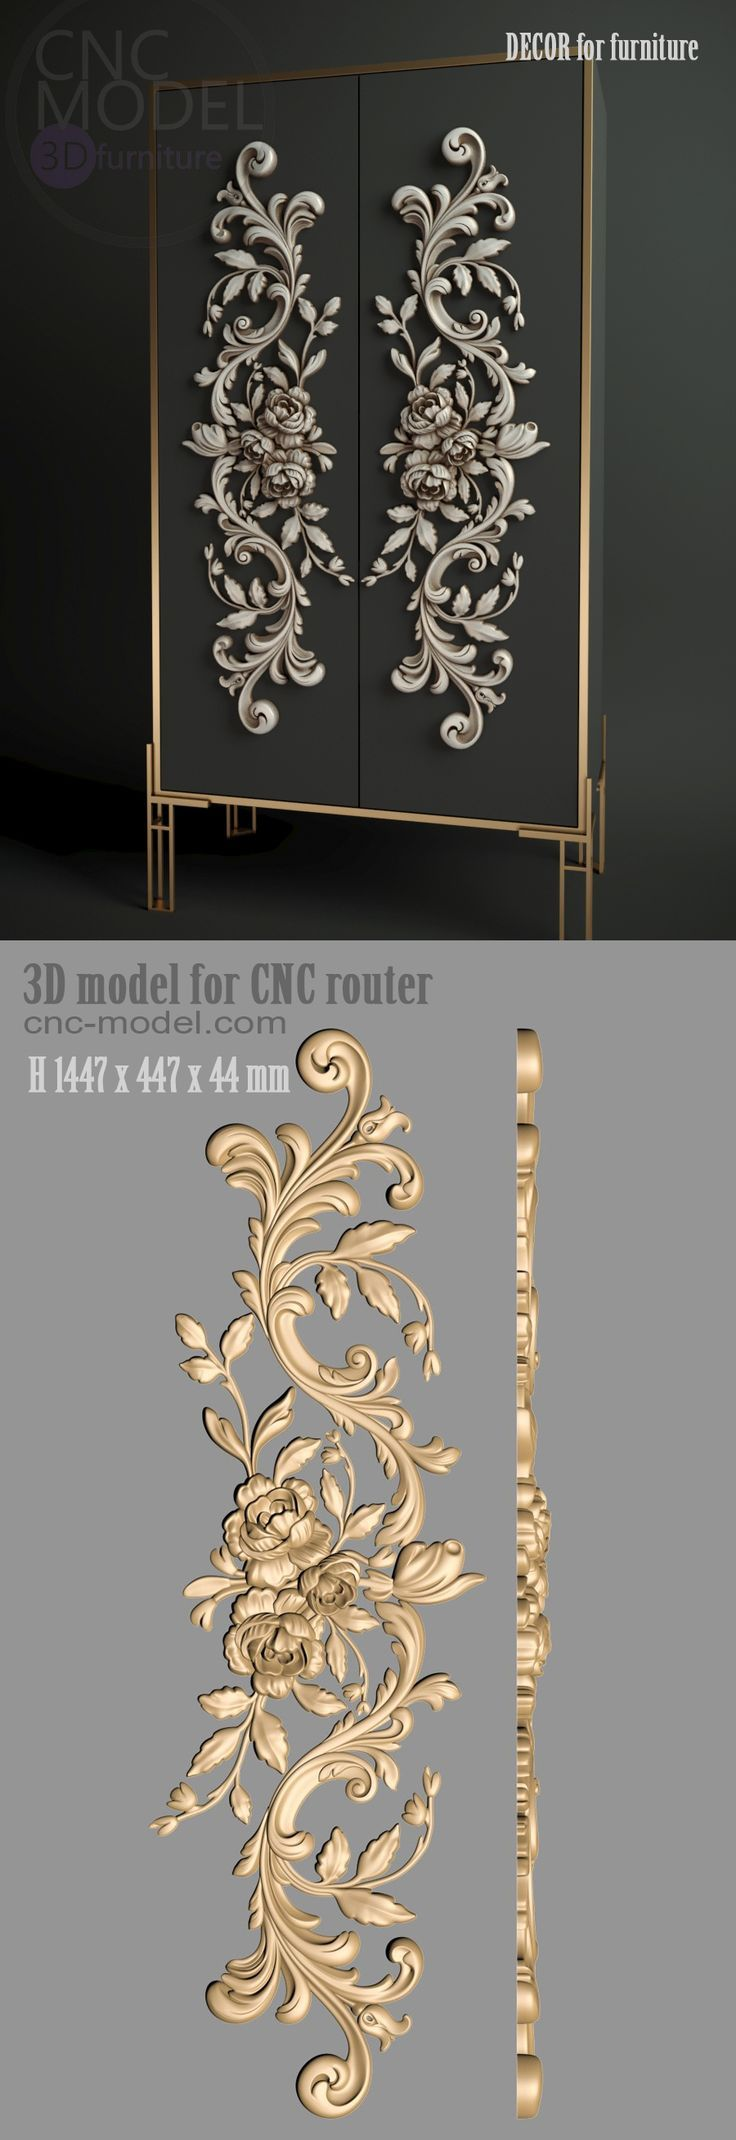 3d Create Your Own Room: A1247 DECOR For Furnishings Cnc-model.com 3D Mannequin For